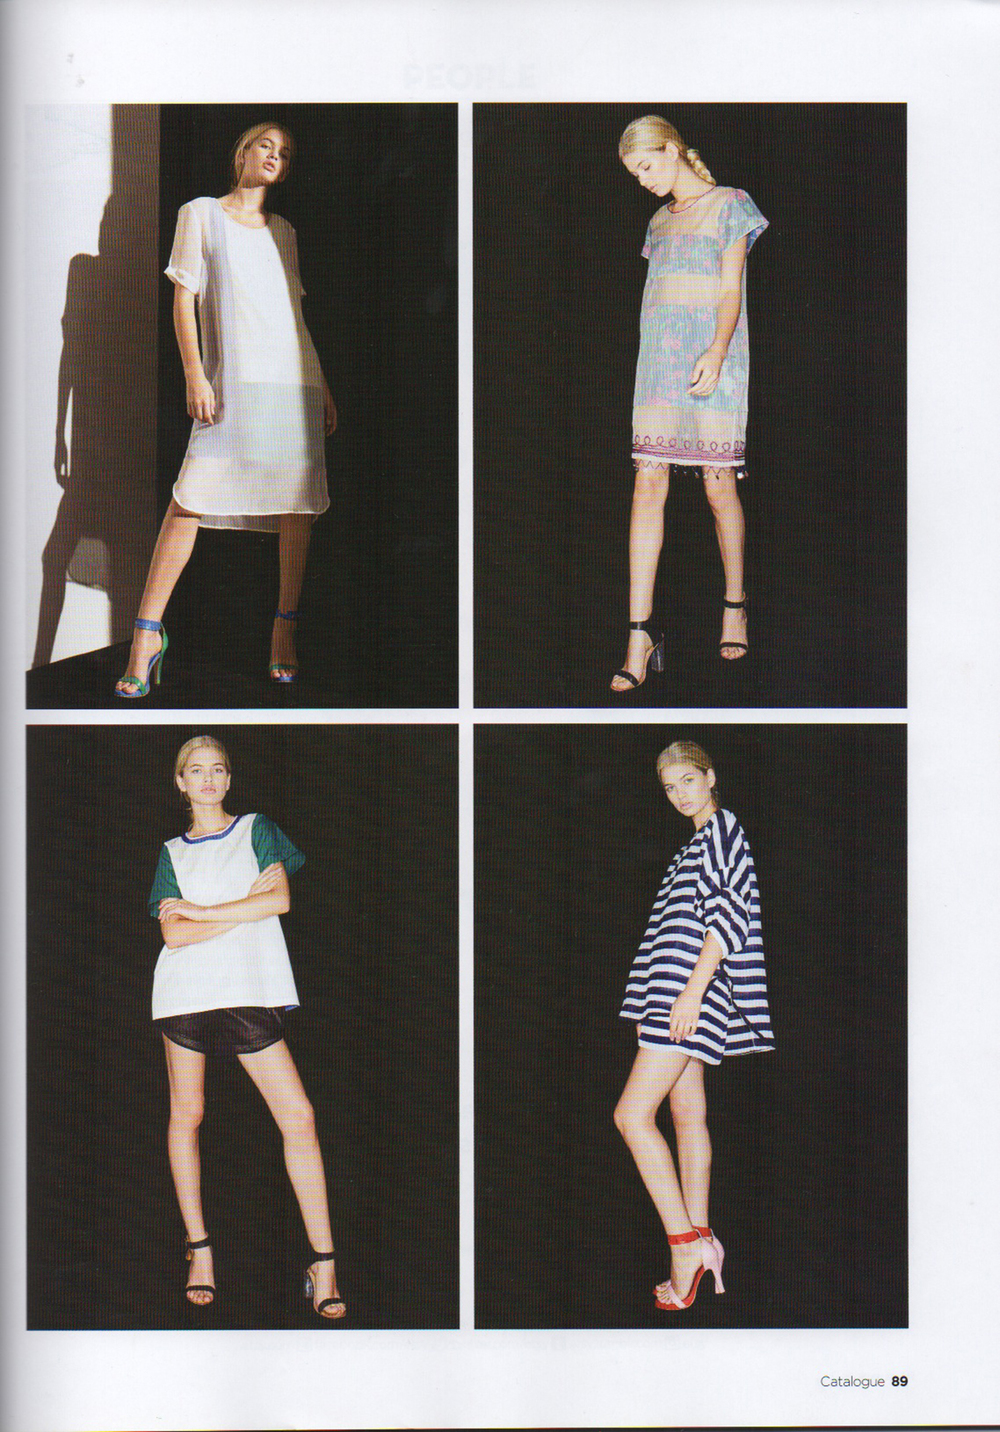 2013-May-Catalogue-7@2x.jpg